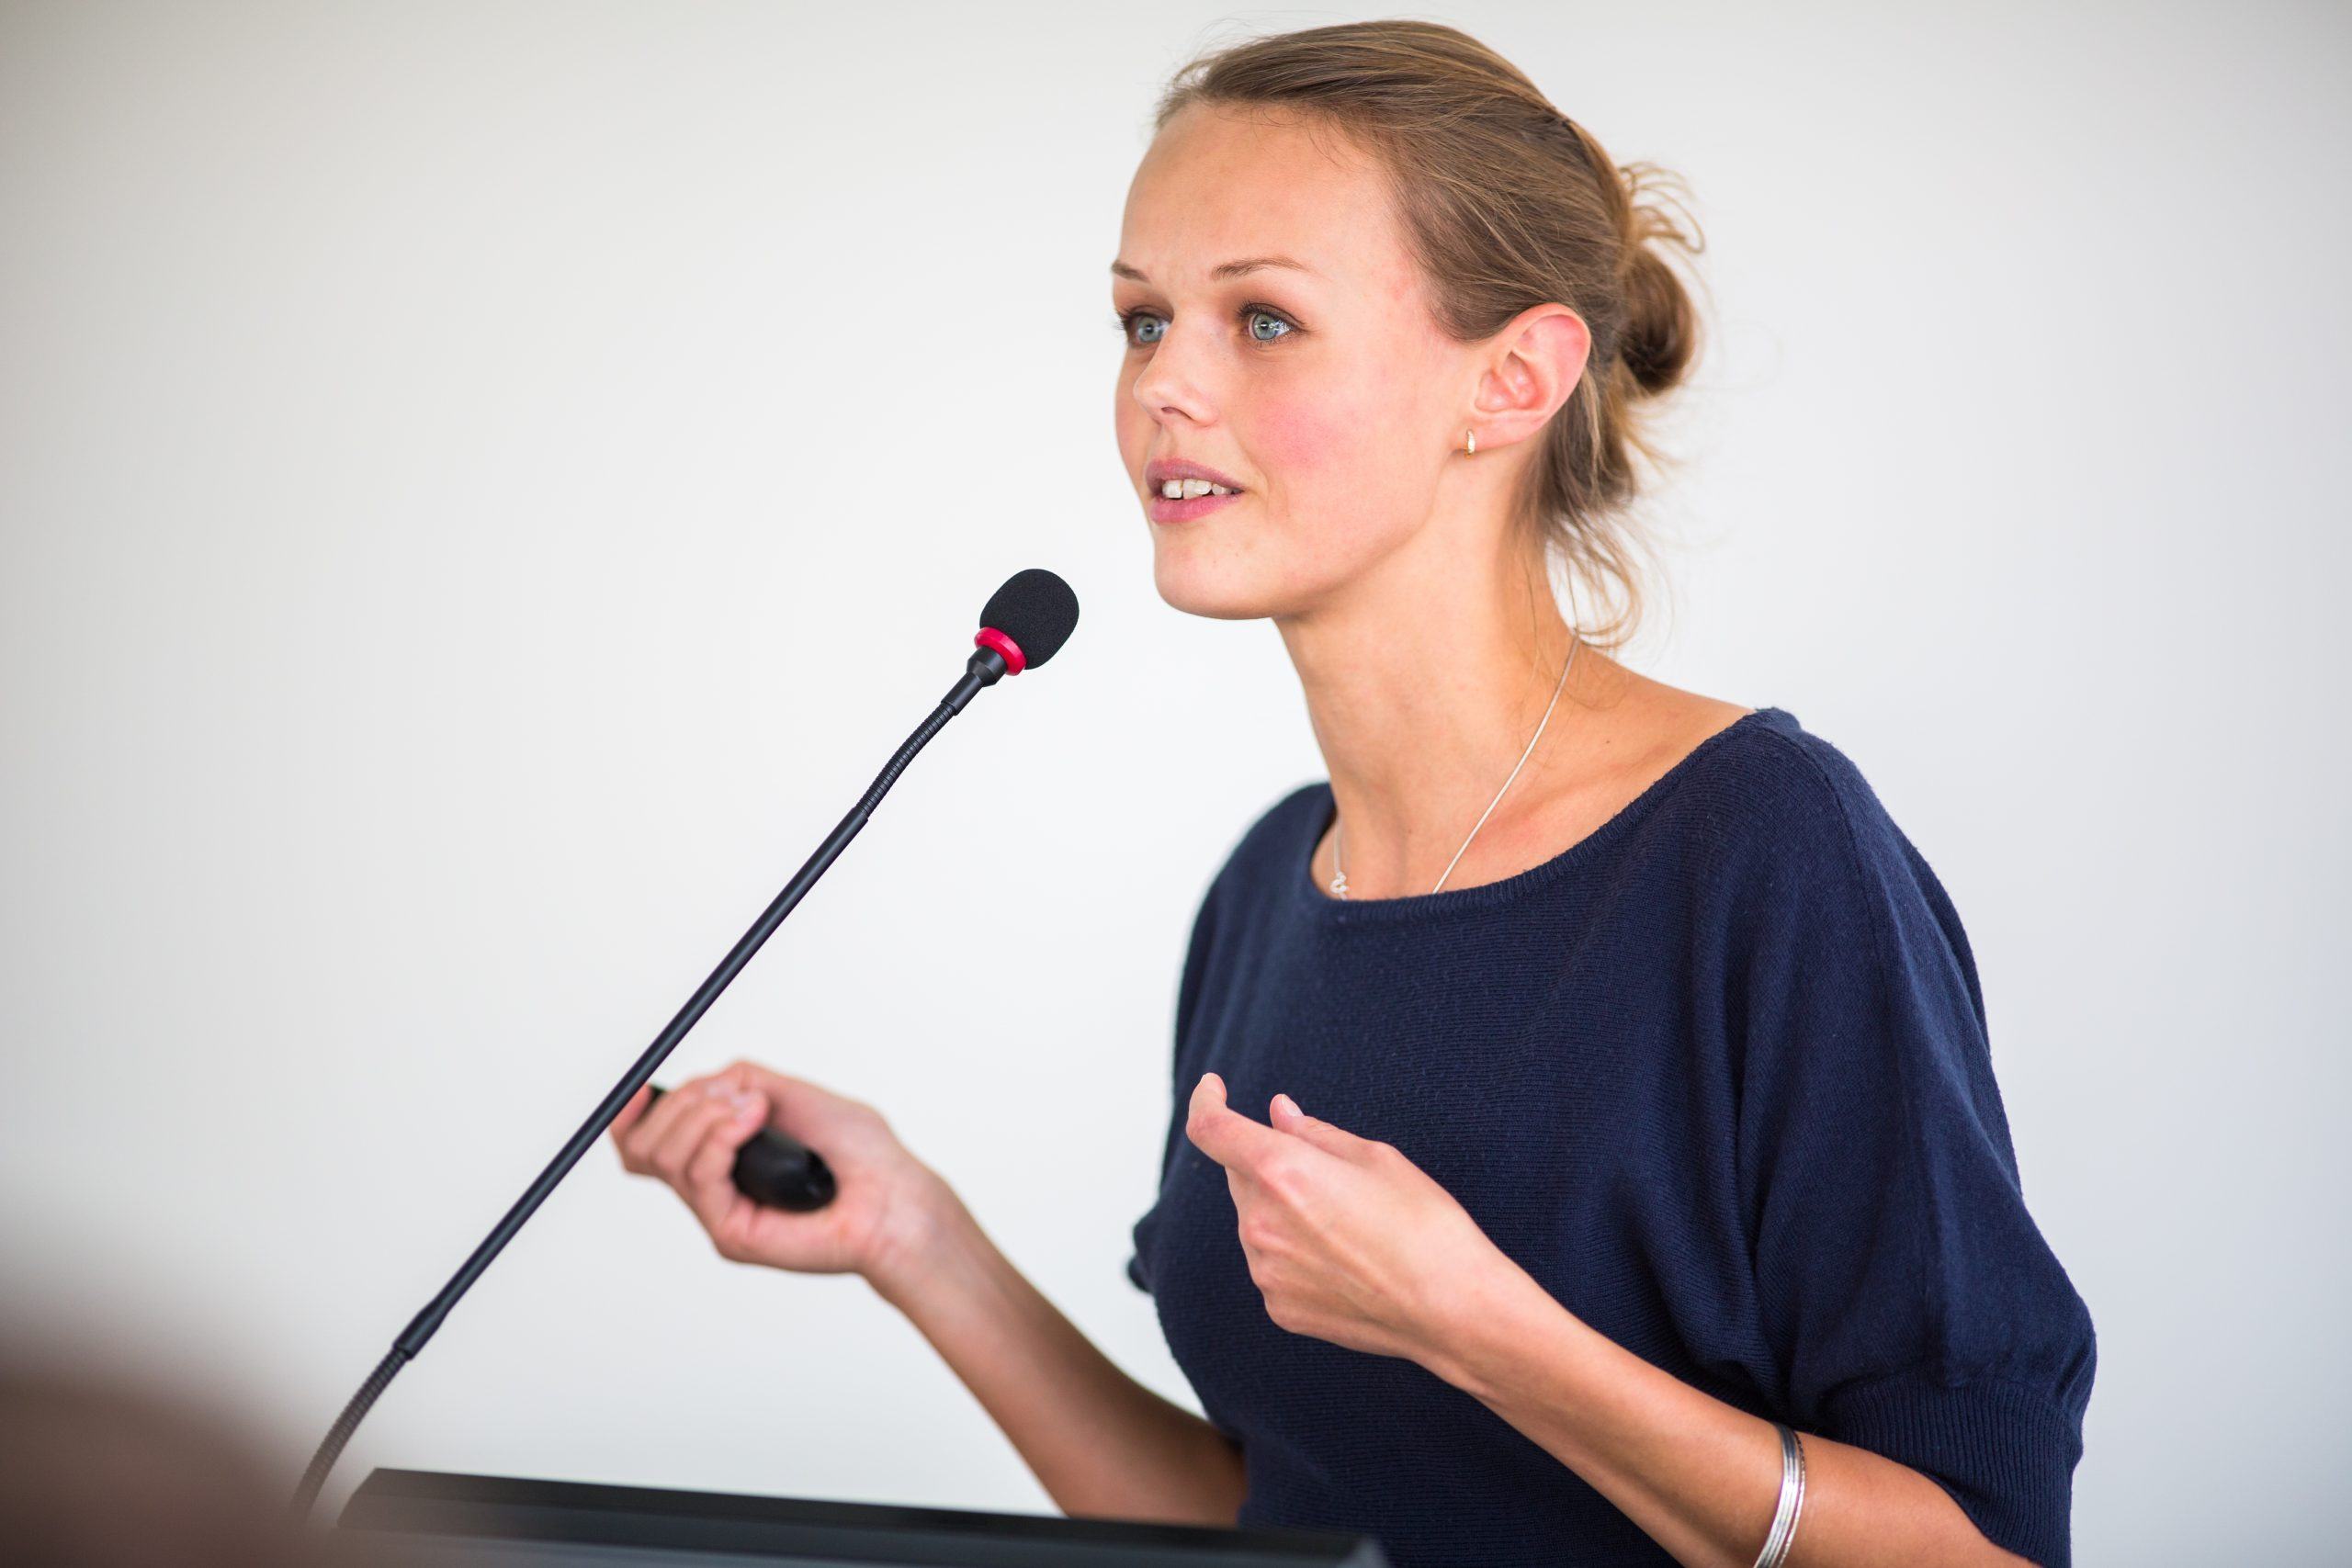 Business Woman Speaking at Conference